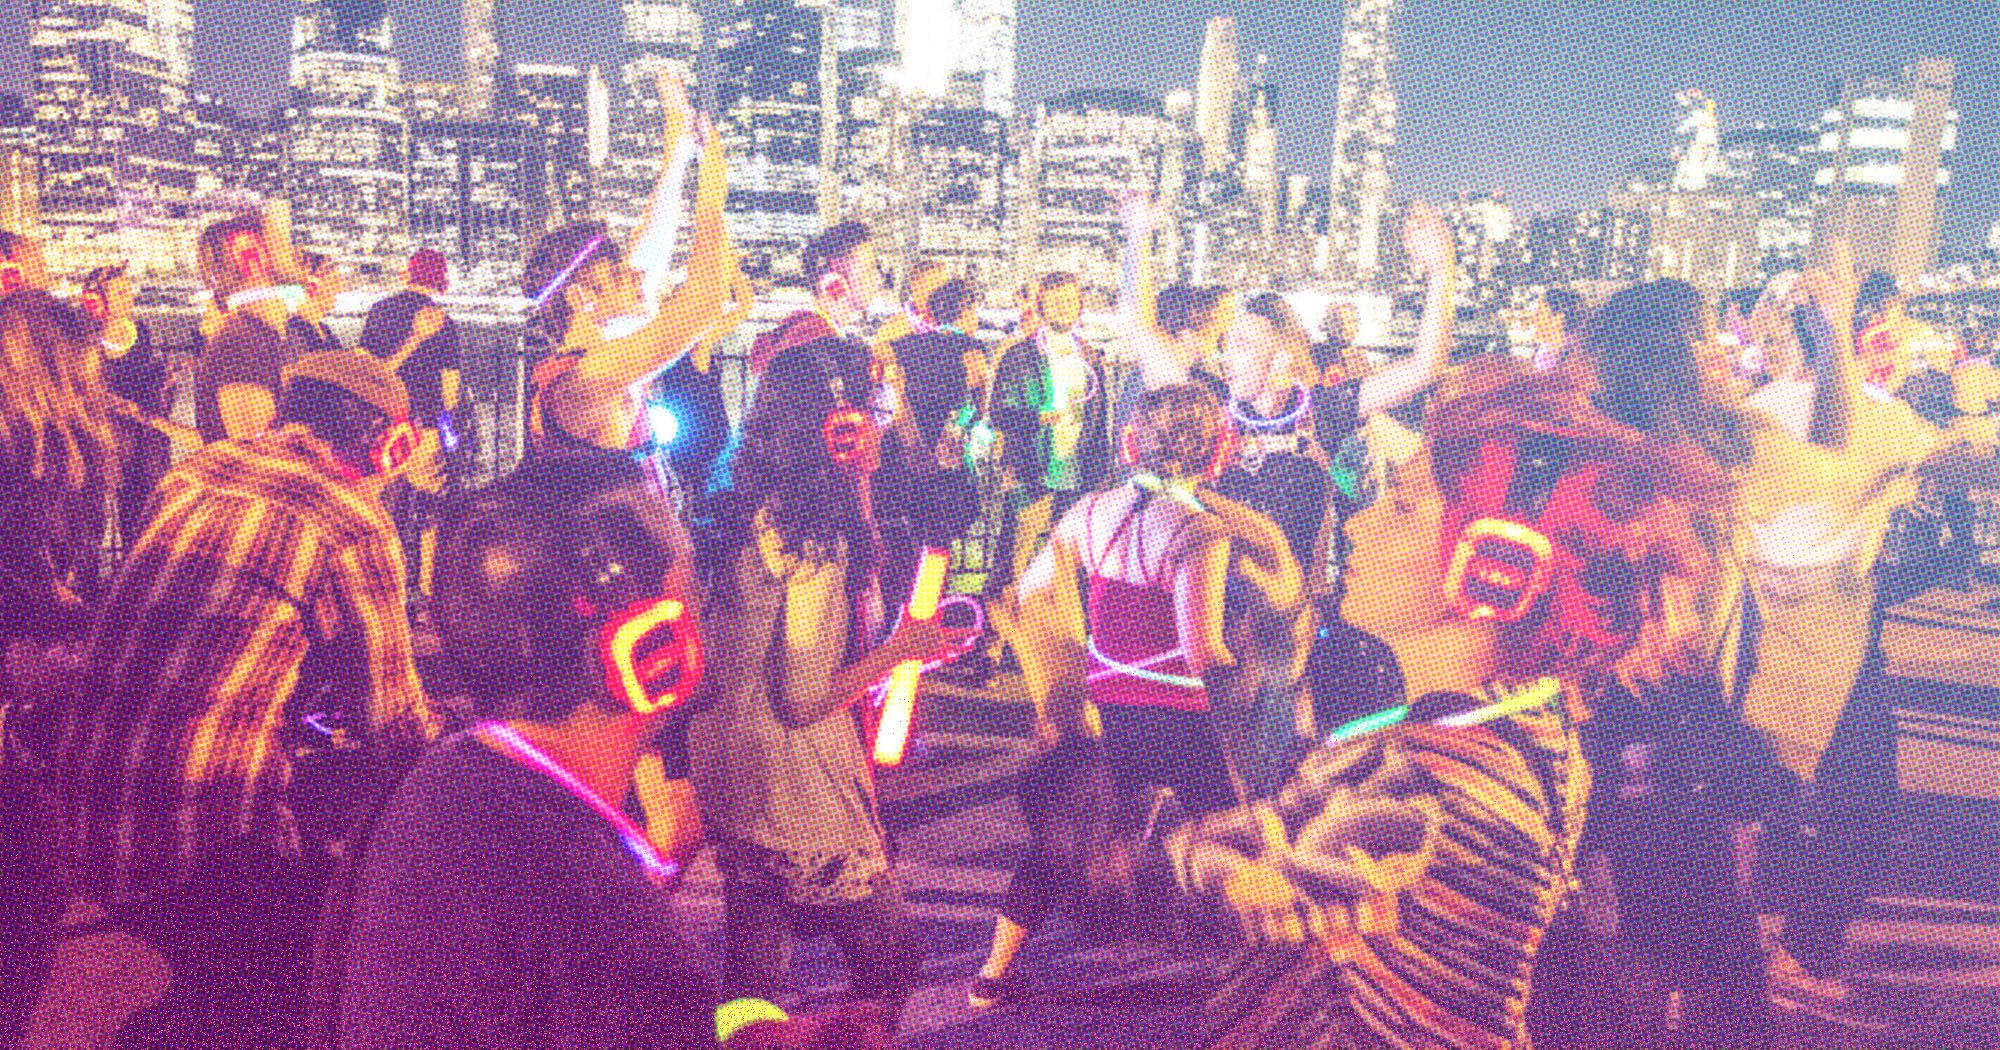 Silent Disco Parties Aren't Just For Fun, They Can Also Help Those With Social Anxiety | Refinery29